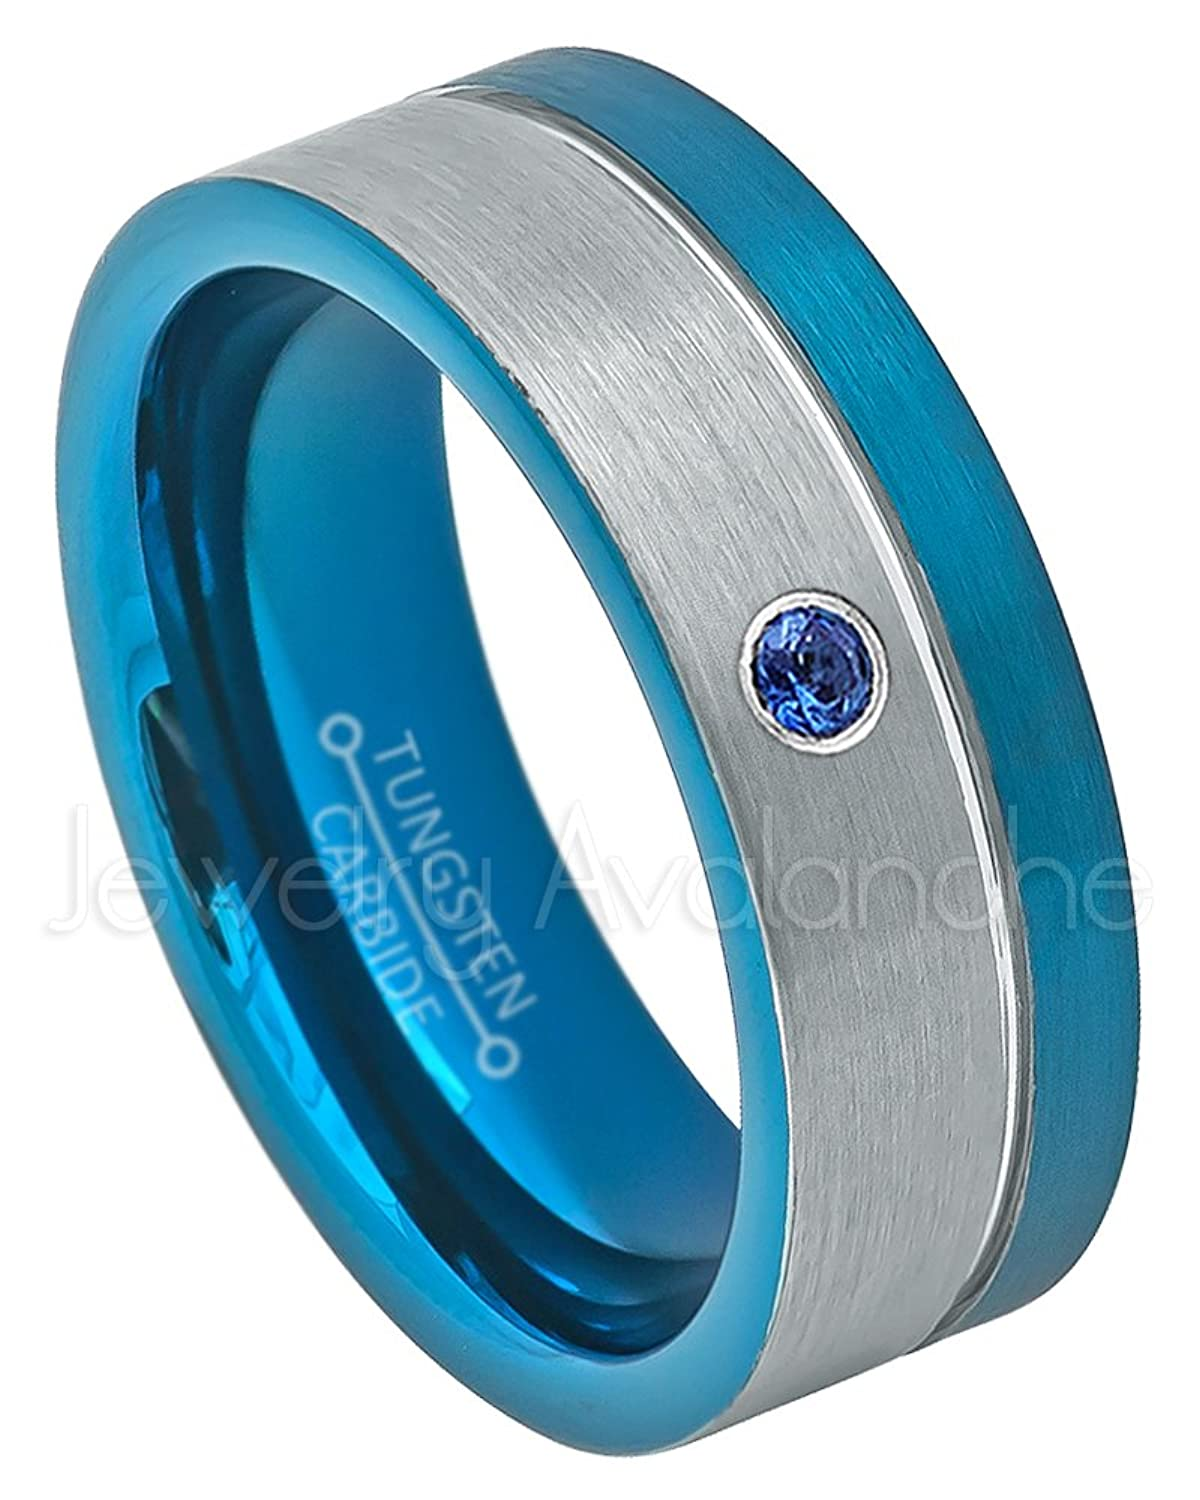 8mm Blue Tungsten Ring, Comfort Fit 2-Tone Pipe Cut Tungsten Wedding Band - 0.07ct Blue Sapphire Solitaire Ring - September Birthstone Ring